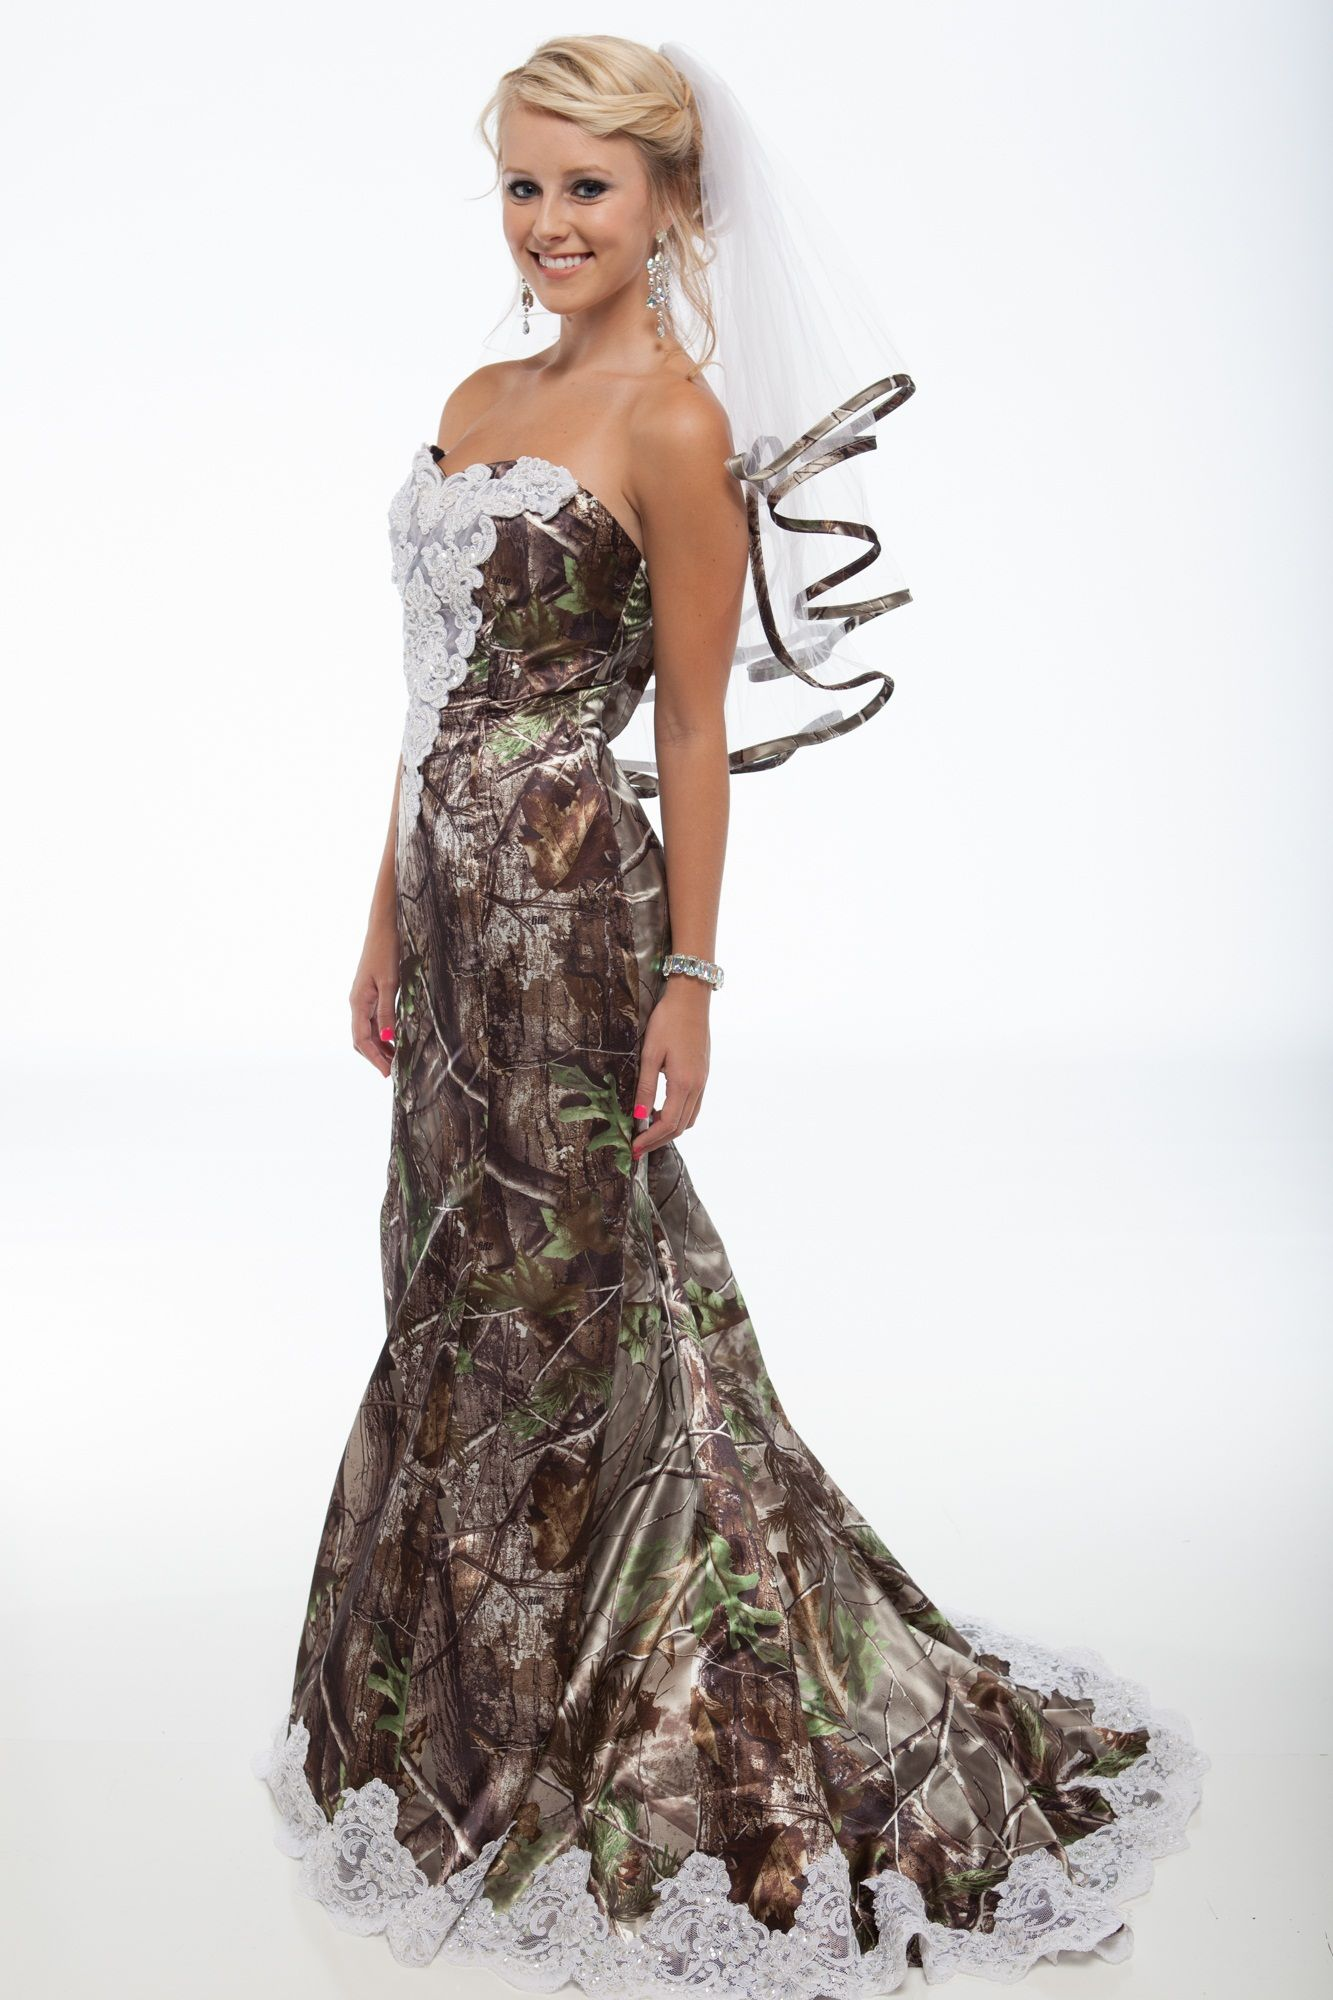 Realtree Camo Wedding Dresses and Formal Attire  Quotes